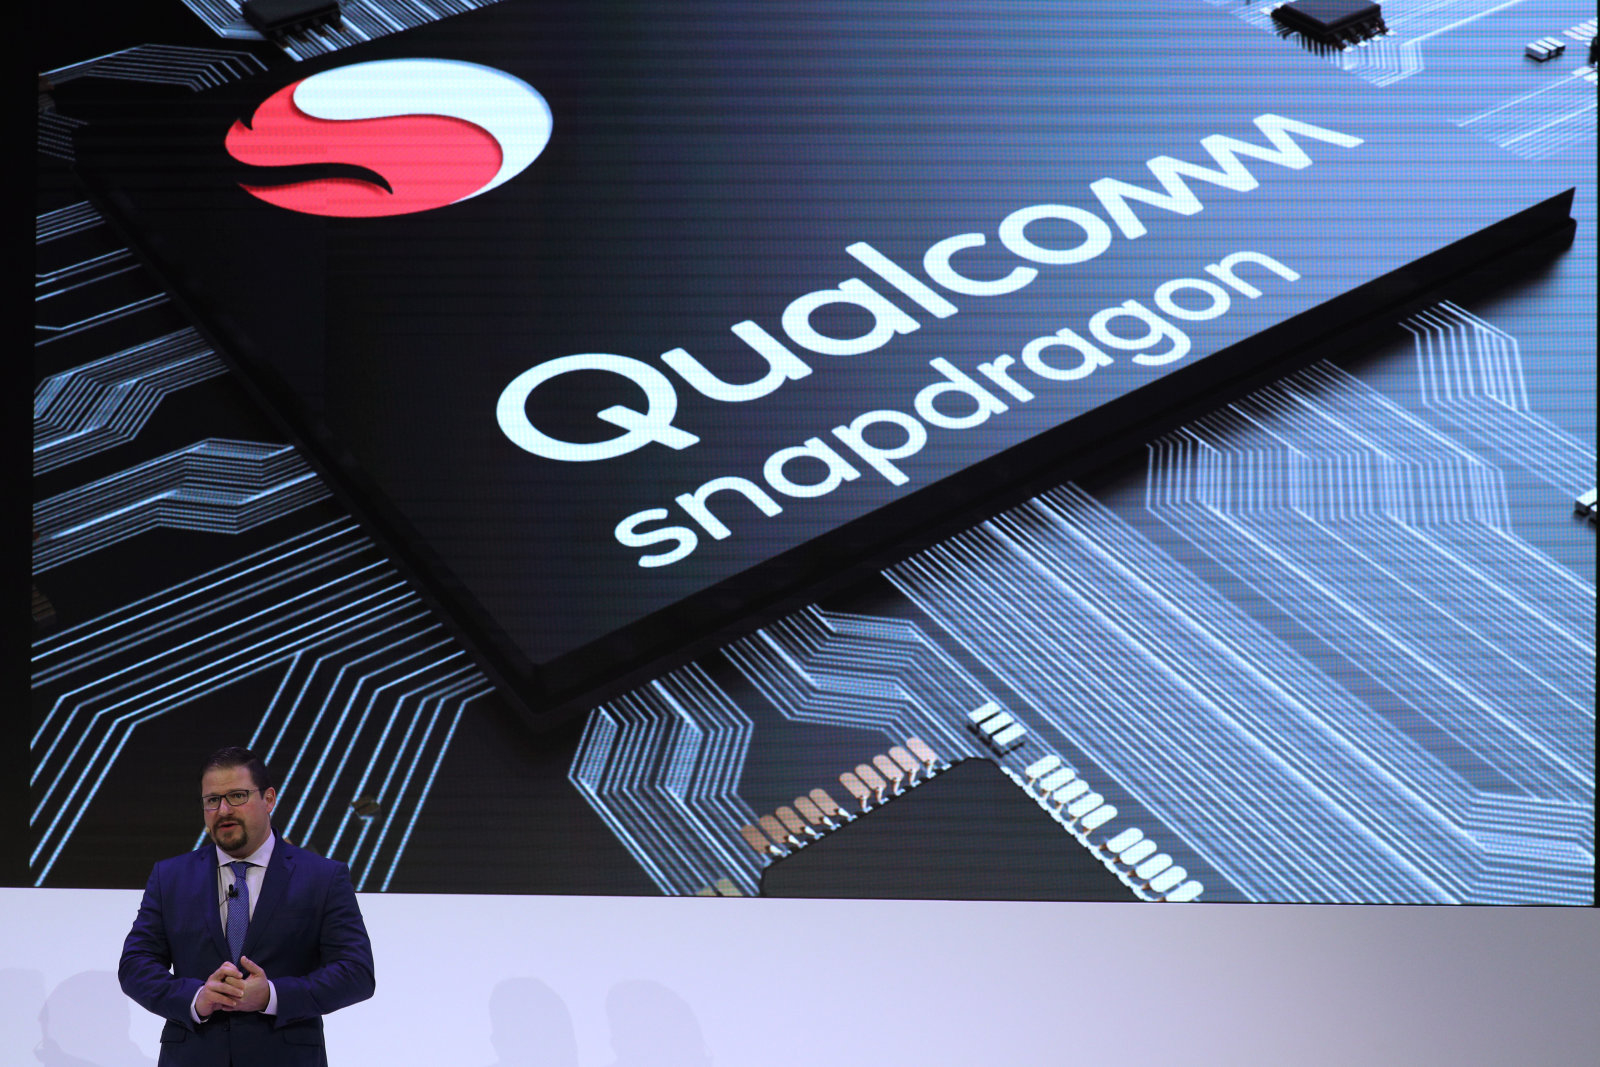 Cristiano Amon, President of Qualcomm Incorporated, delivers a presentation during the Mobile World Congress in Barcelona, Spain, February 26, 2018. REUTERS/Sergio Perez